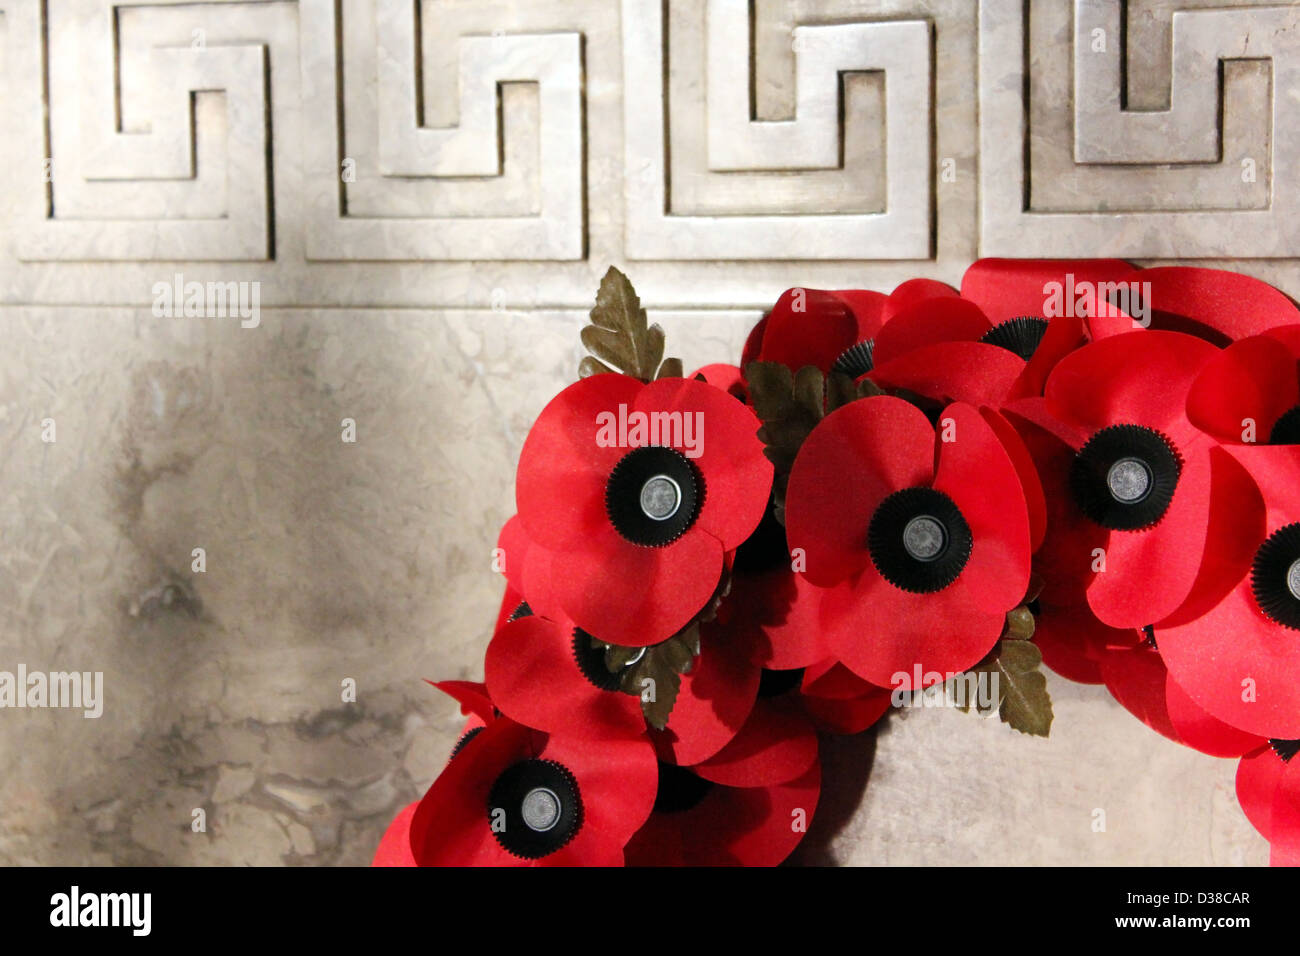 A Poppy Wreath laid at a World War Memorial in Birmingham, United Kingdom for the Remembrance day on 11th November. - Stock Image